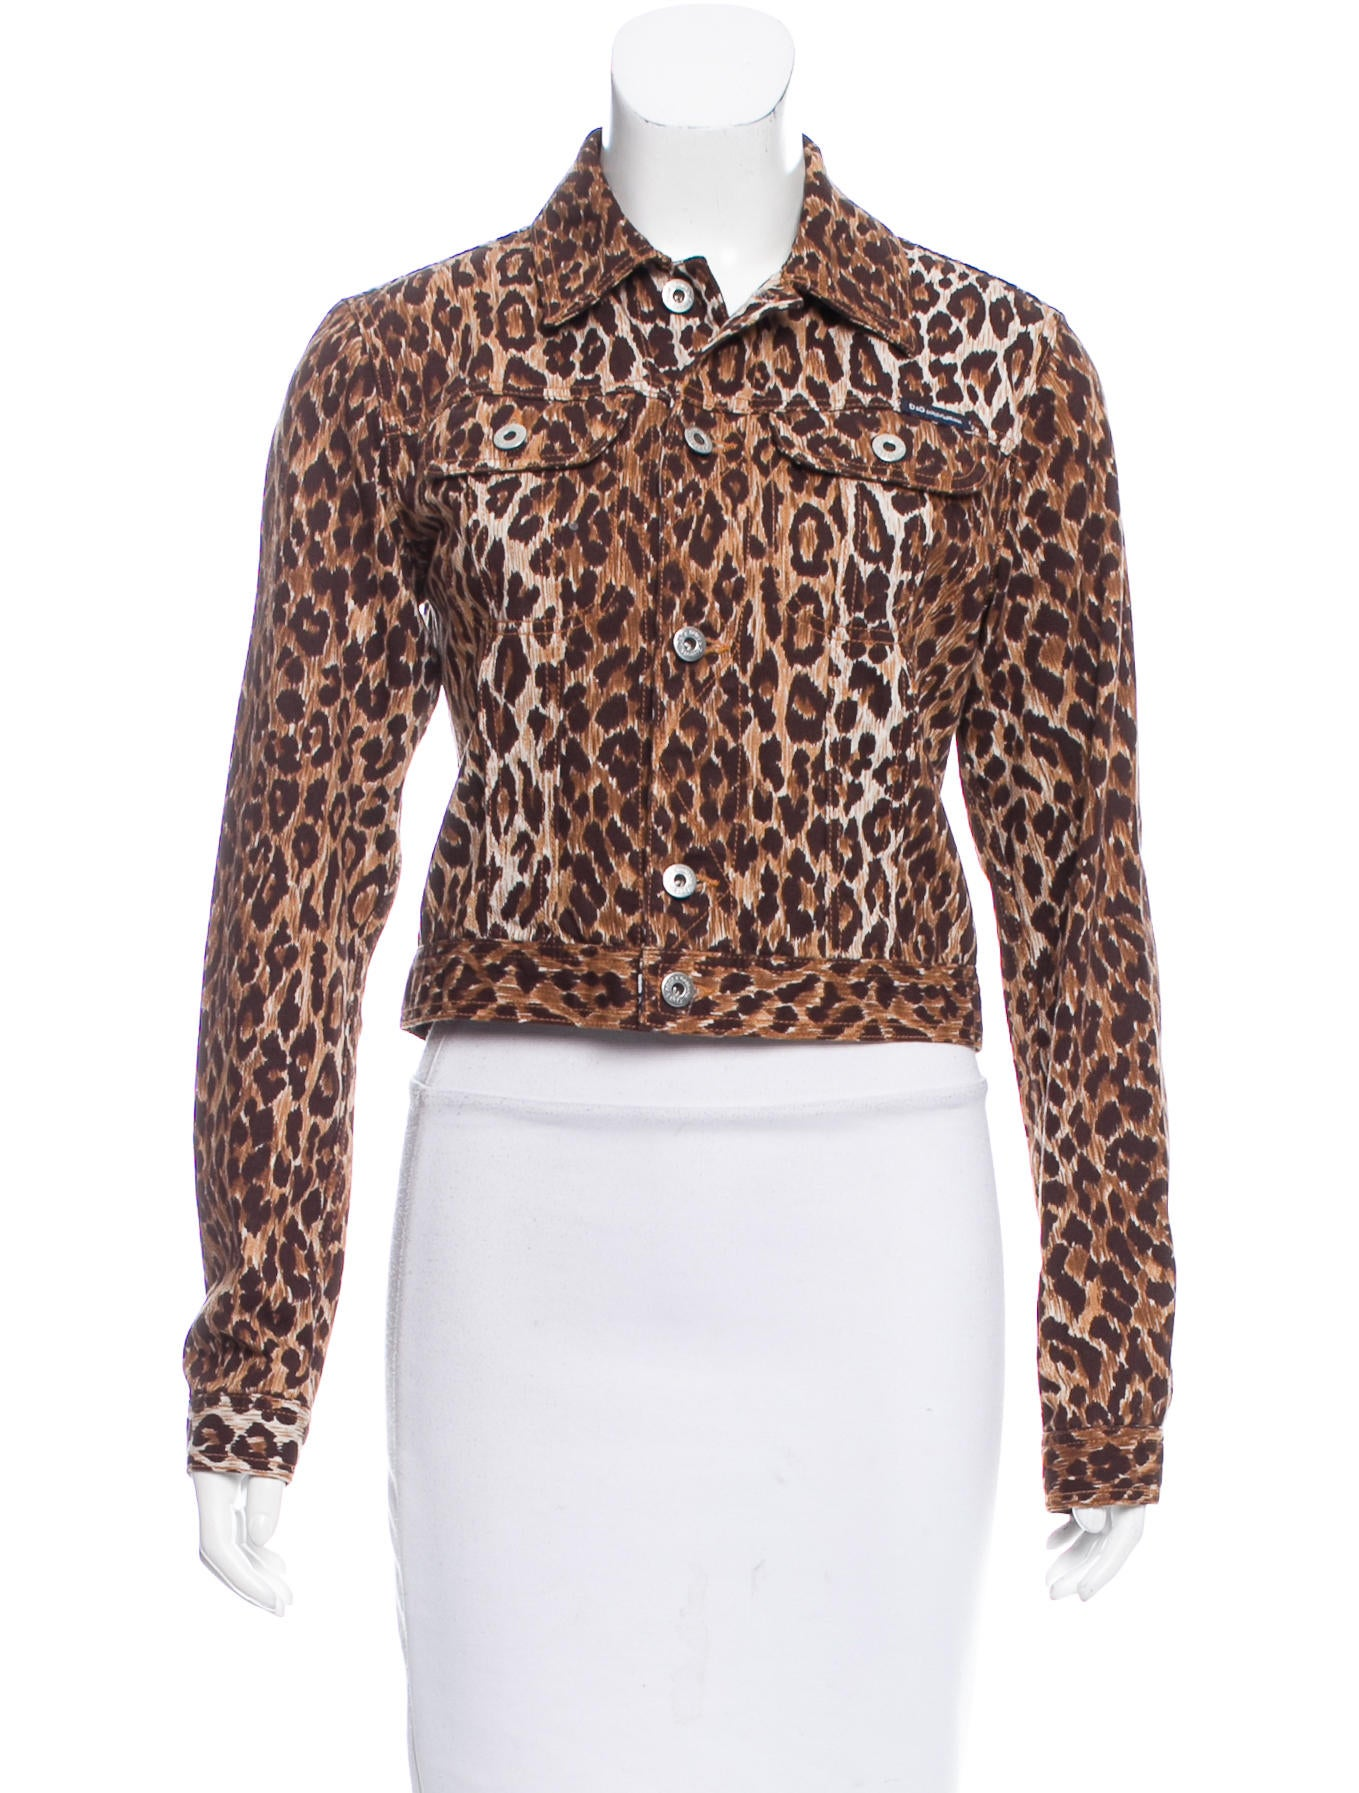 D Amp G Leopard Denim Jacket Clothing Wdg36062 The Realreal